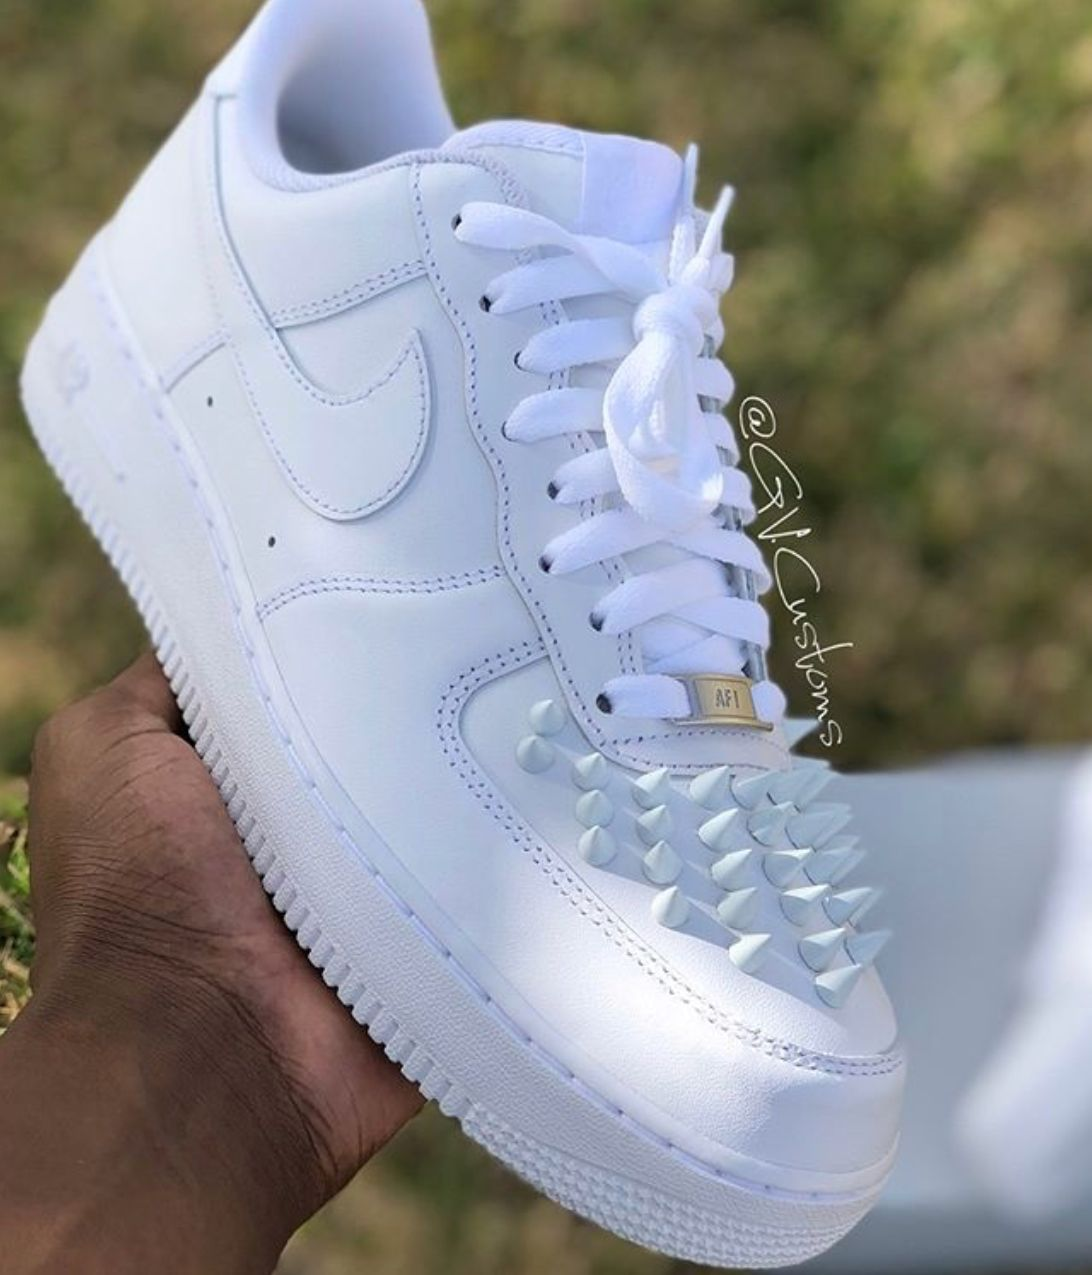 Pin by Afaf on Clothes | Sneakers nike, Sneaker boots